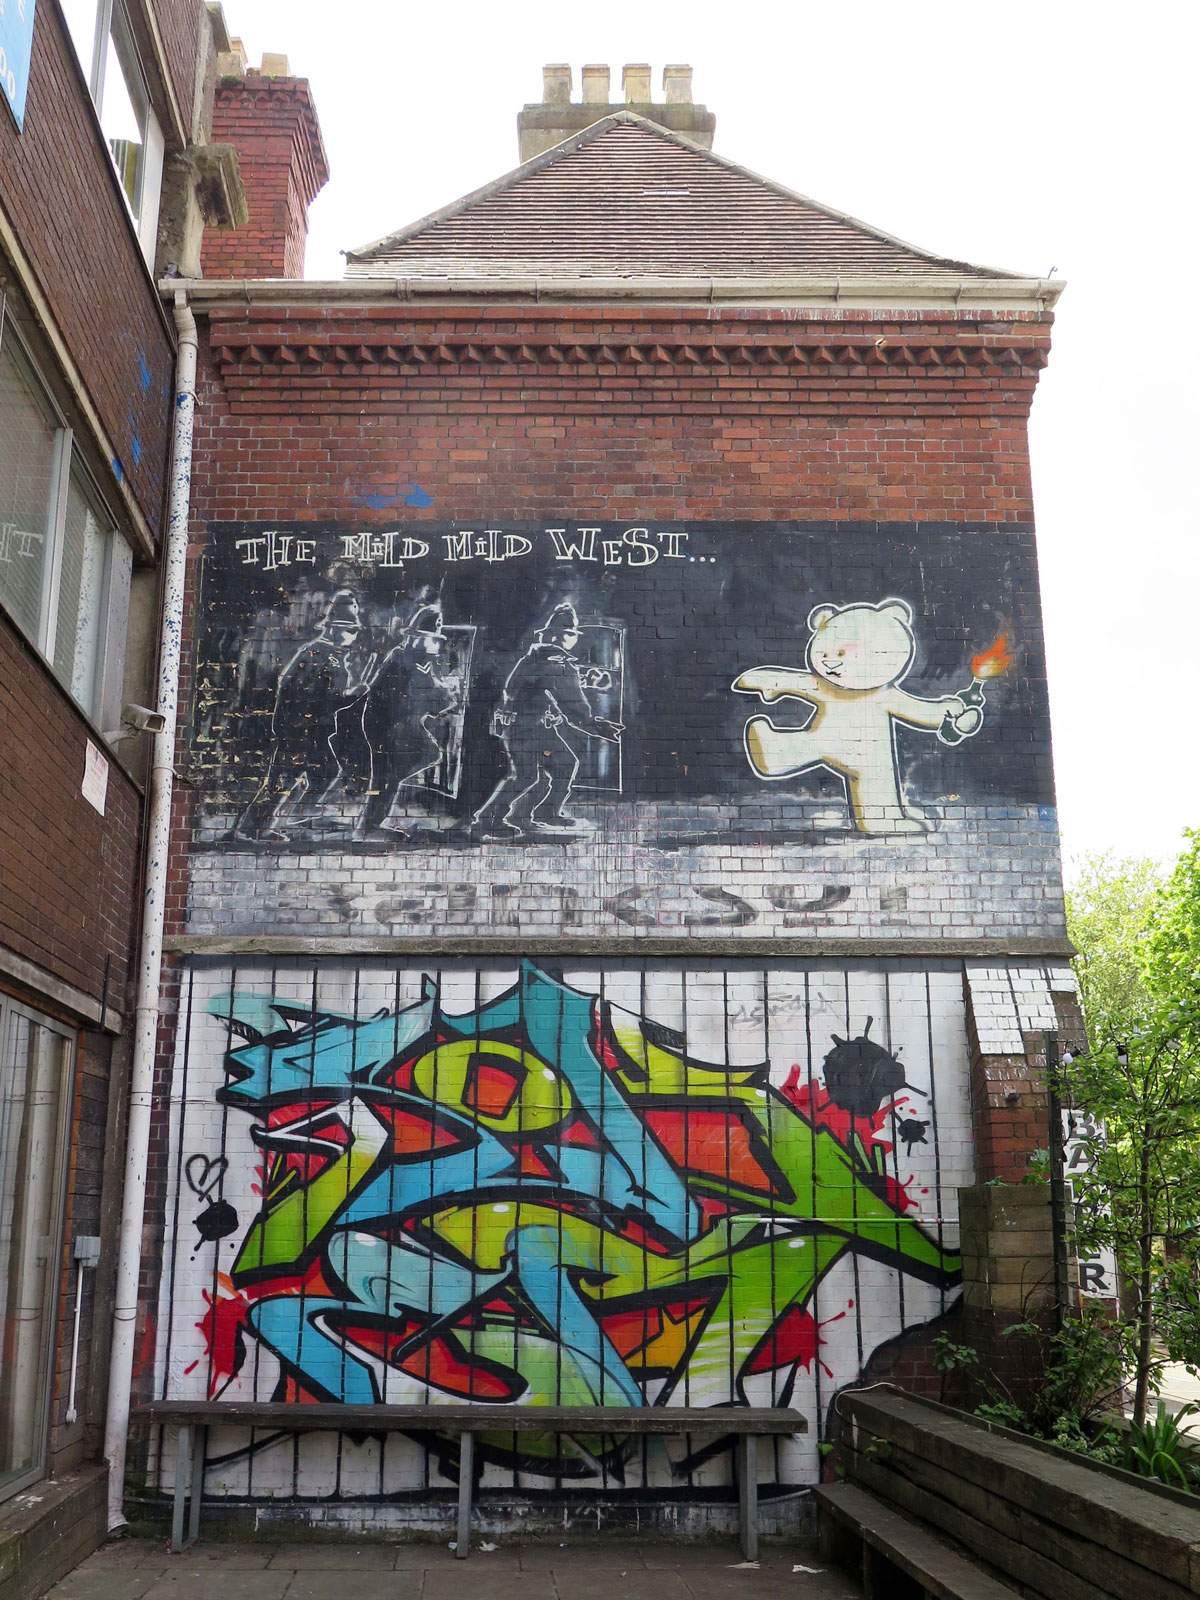 Banksy and some artwork by Soker